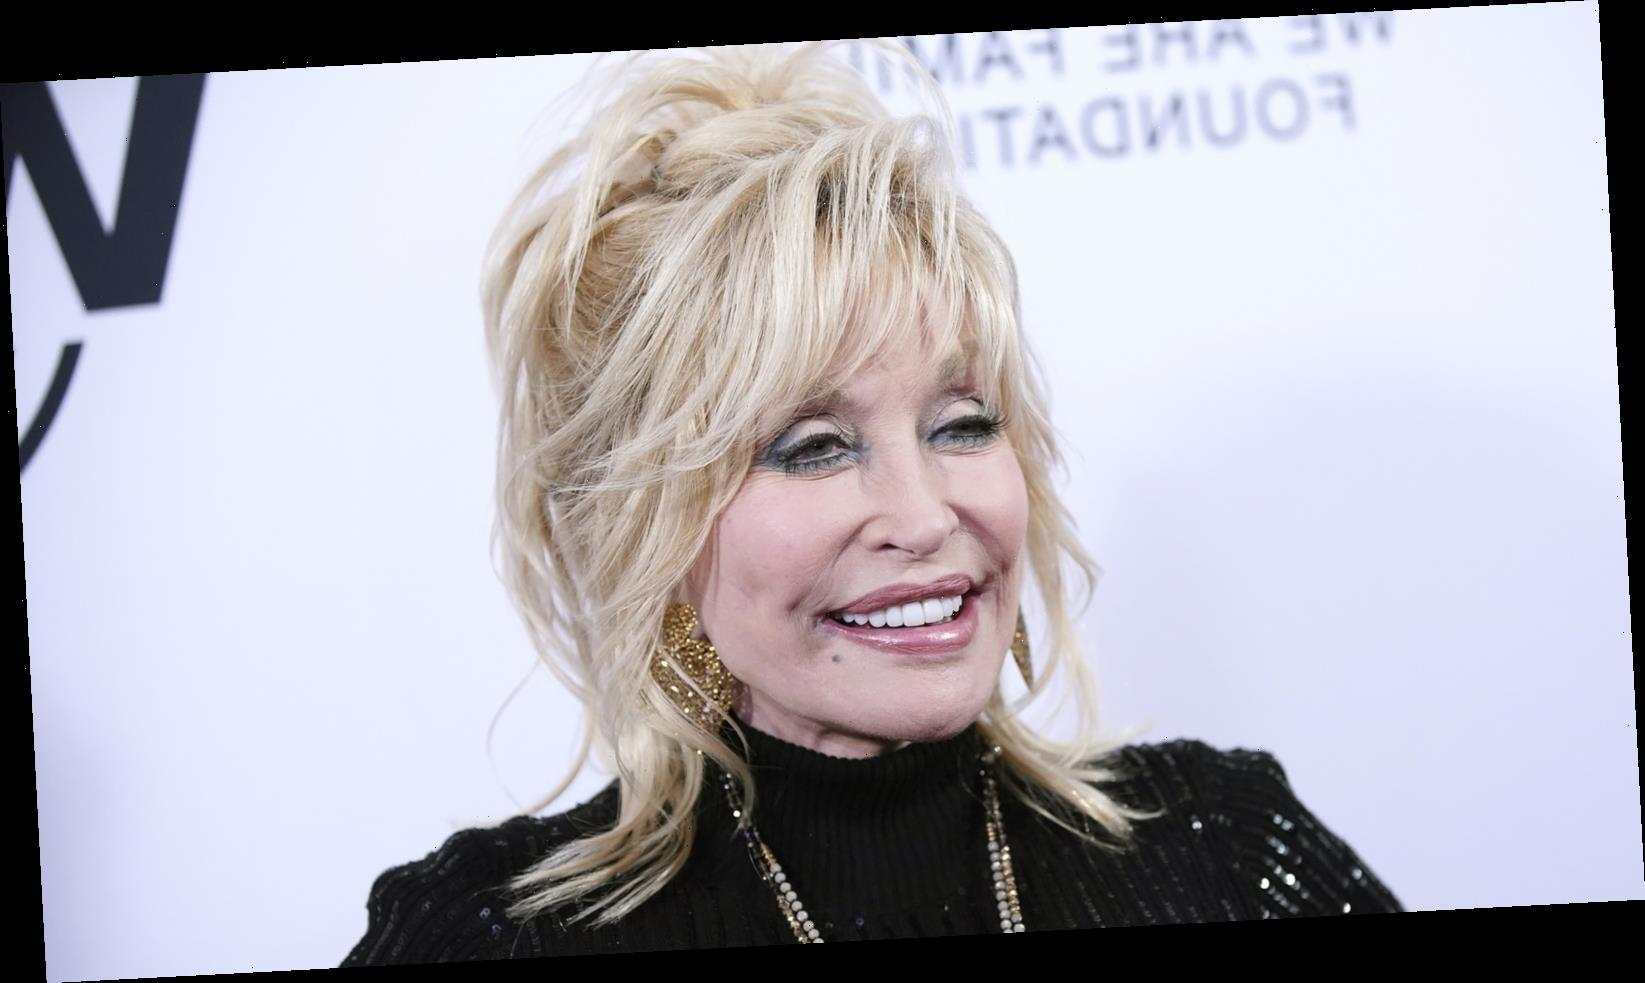 How Dolly Parton feels about helping create a Covid-19 vaccine